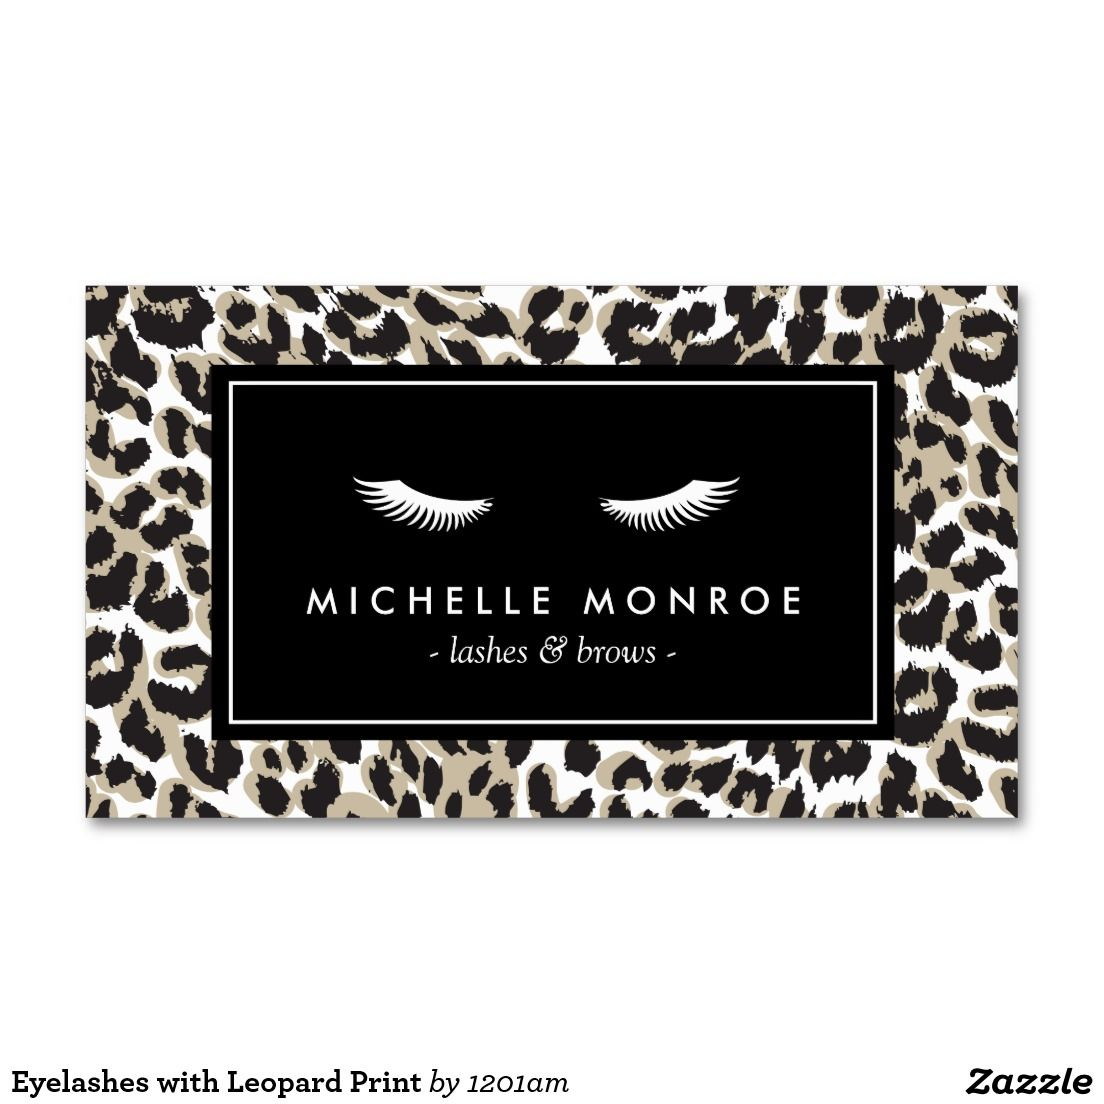 Eyelashes with Leopard Print Business Card - Perfect for Lash ...